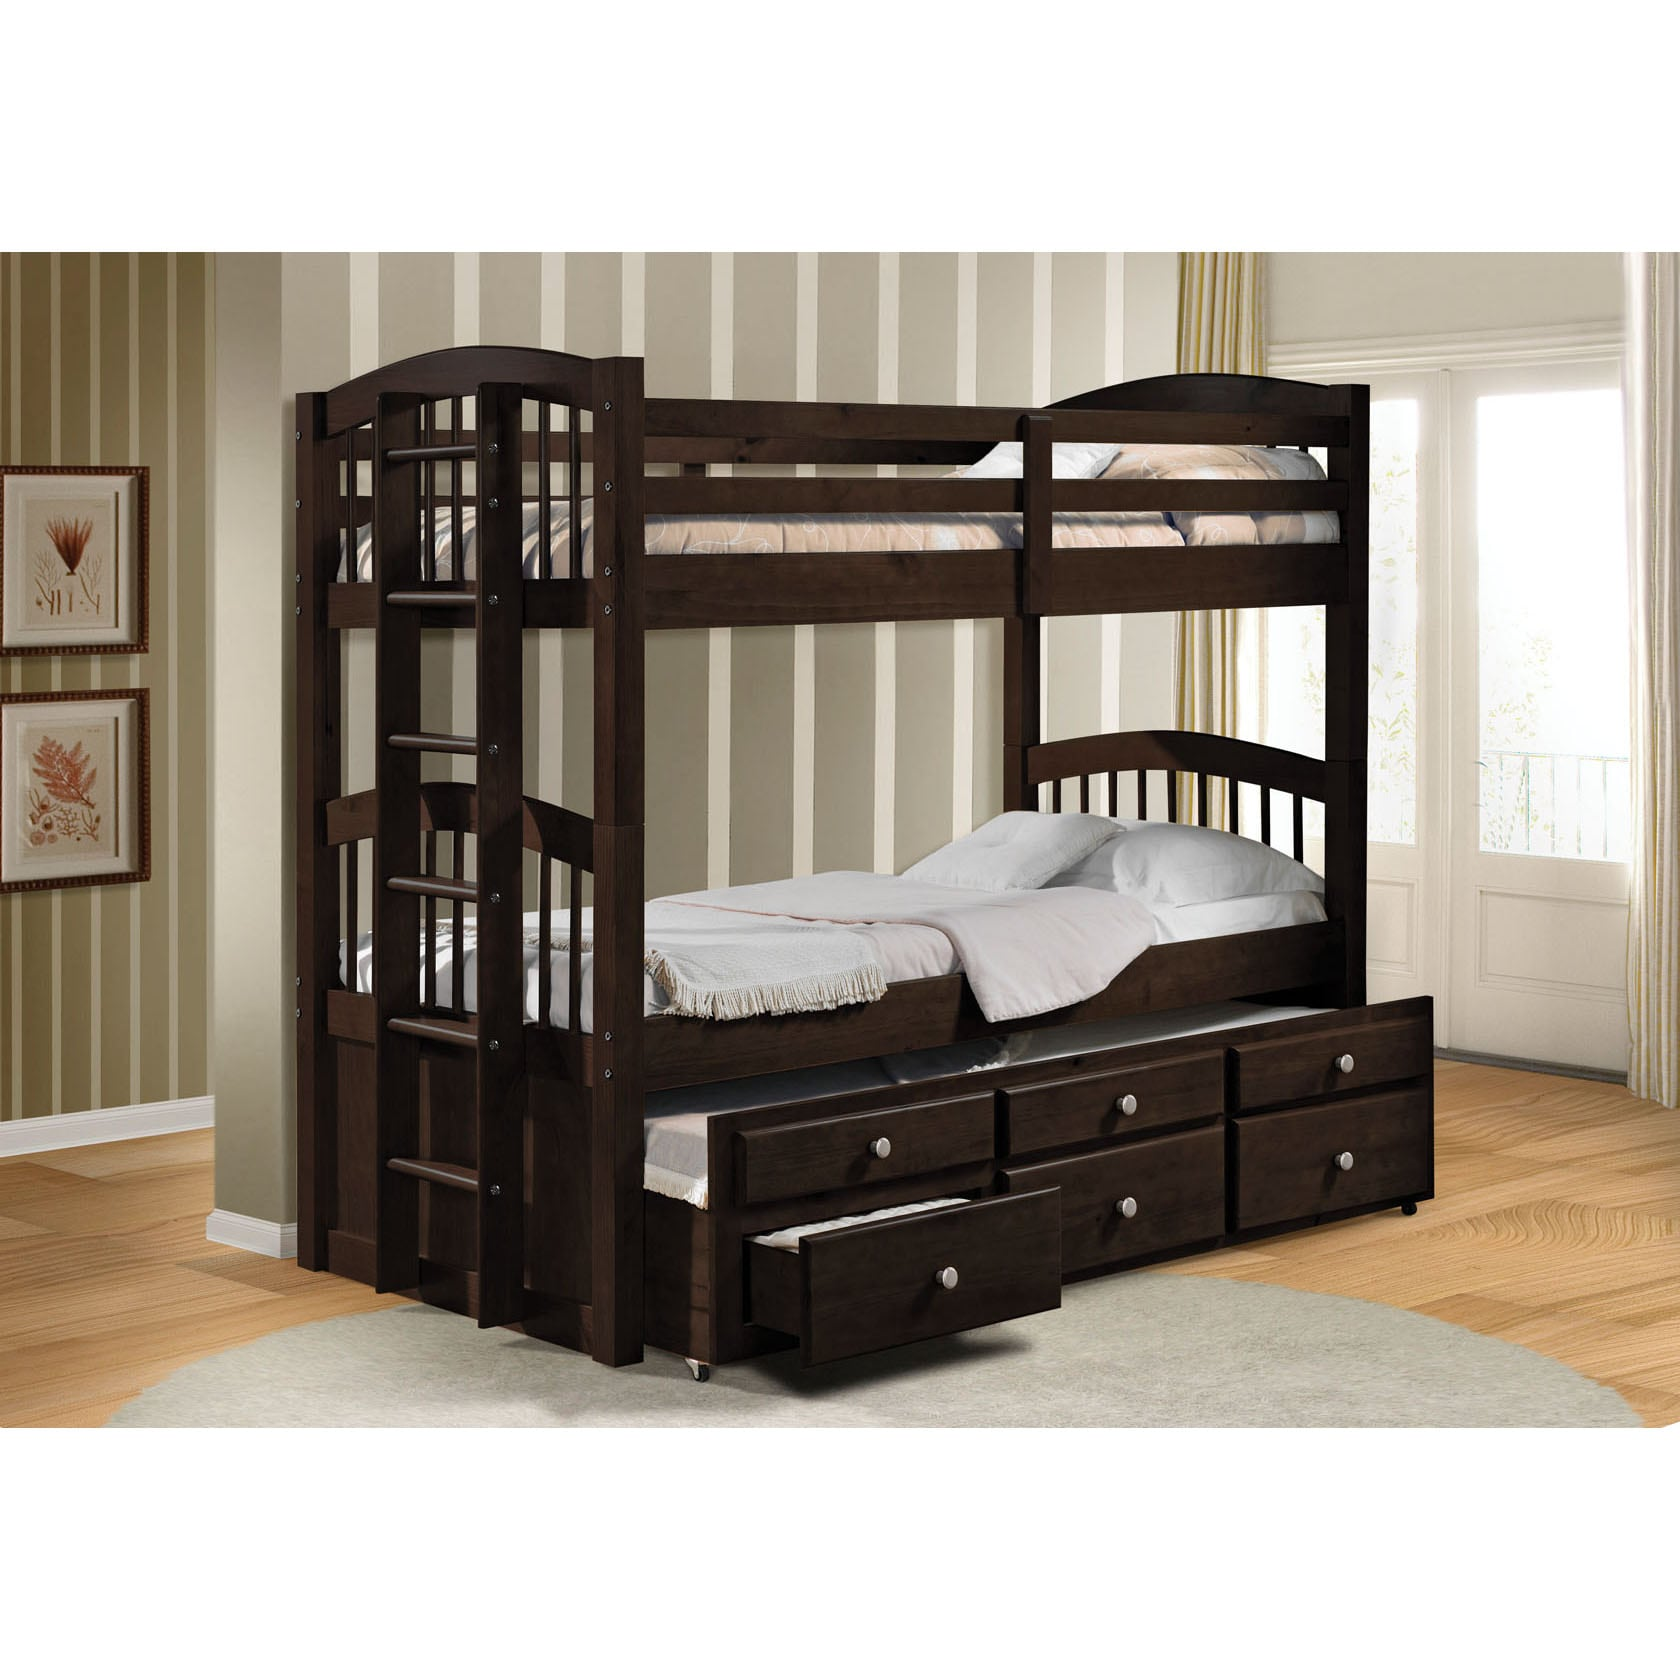 Micah Espresso Twin Bunk Bed With Trundle 14333151